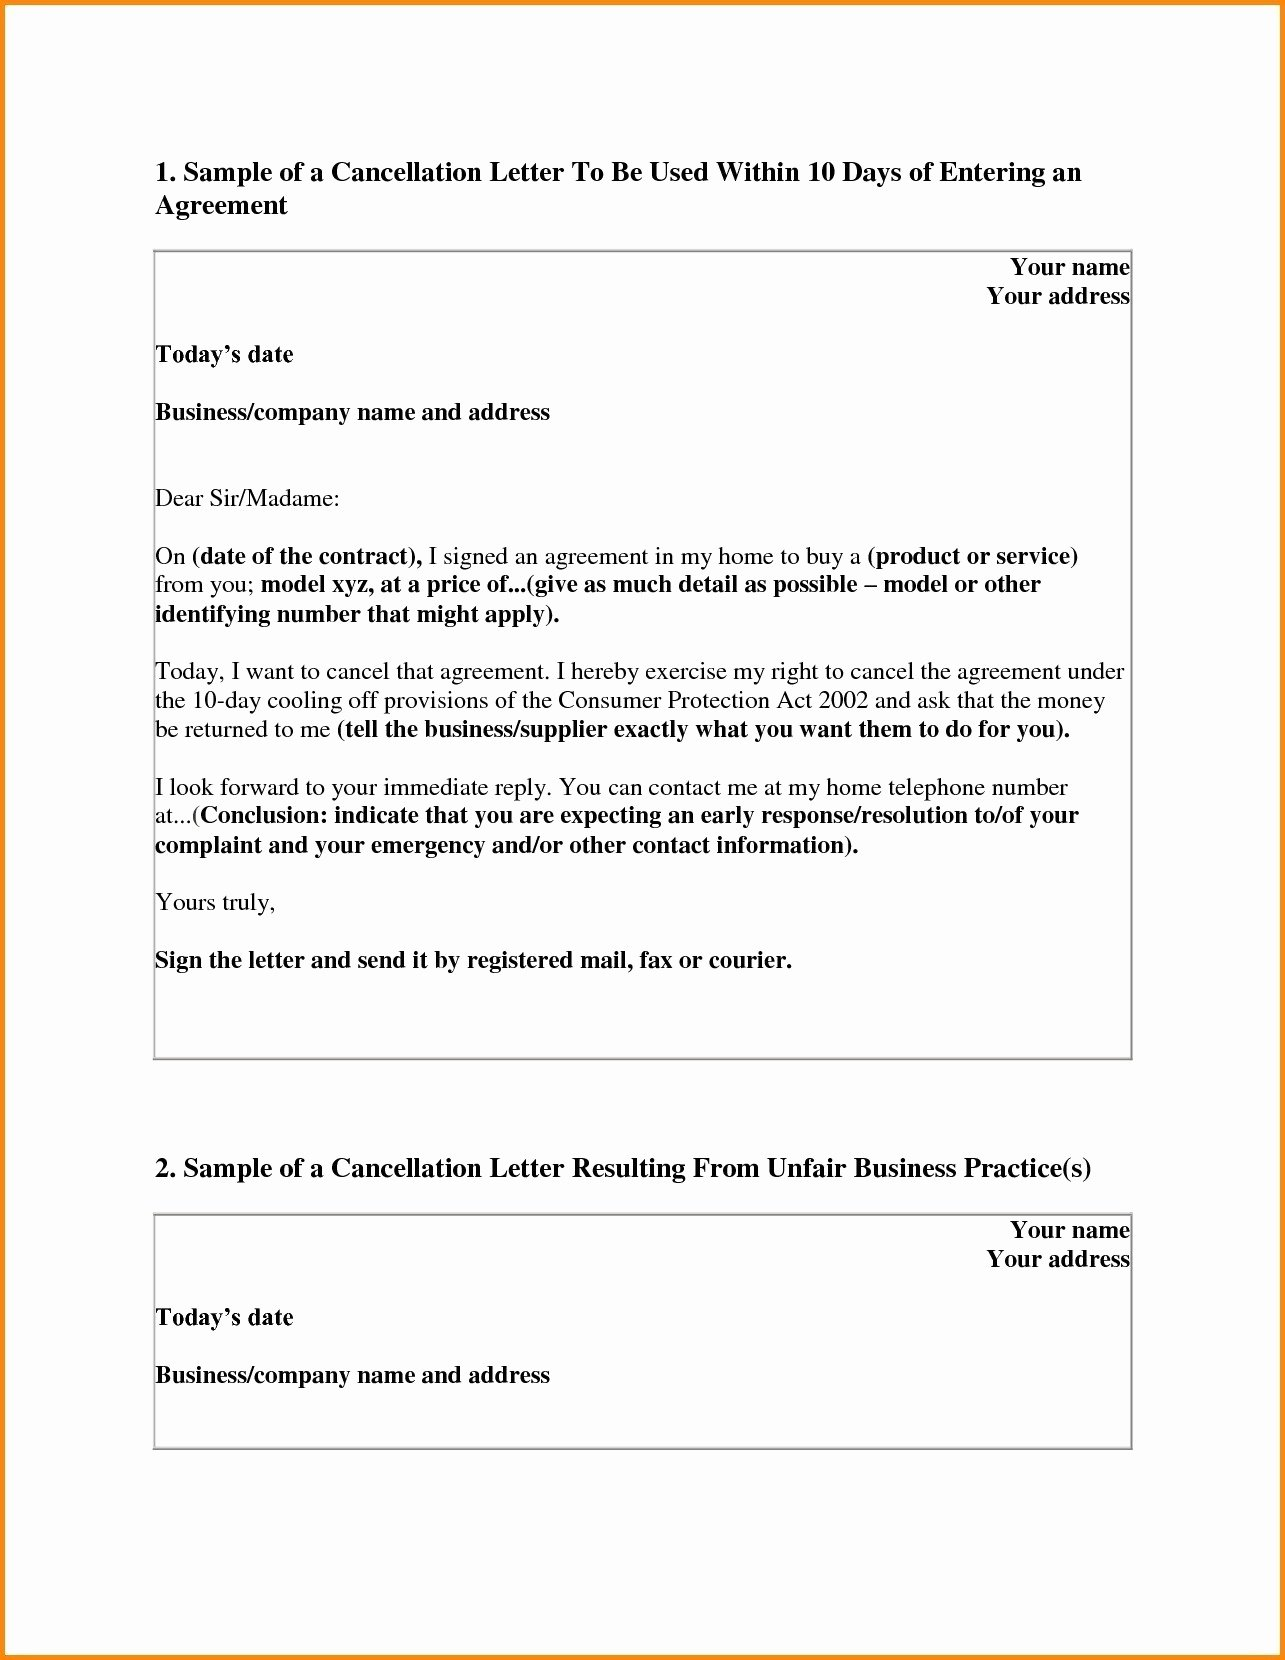 Timeshare Rescission Letter Sample Beautiful Timeshare Rescission Letter Template Samples